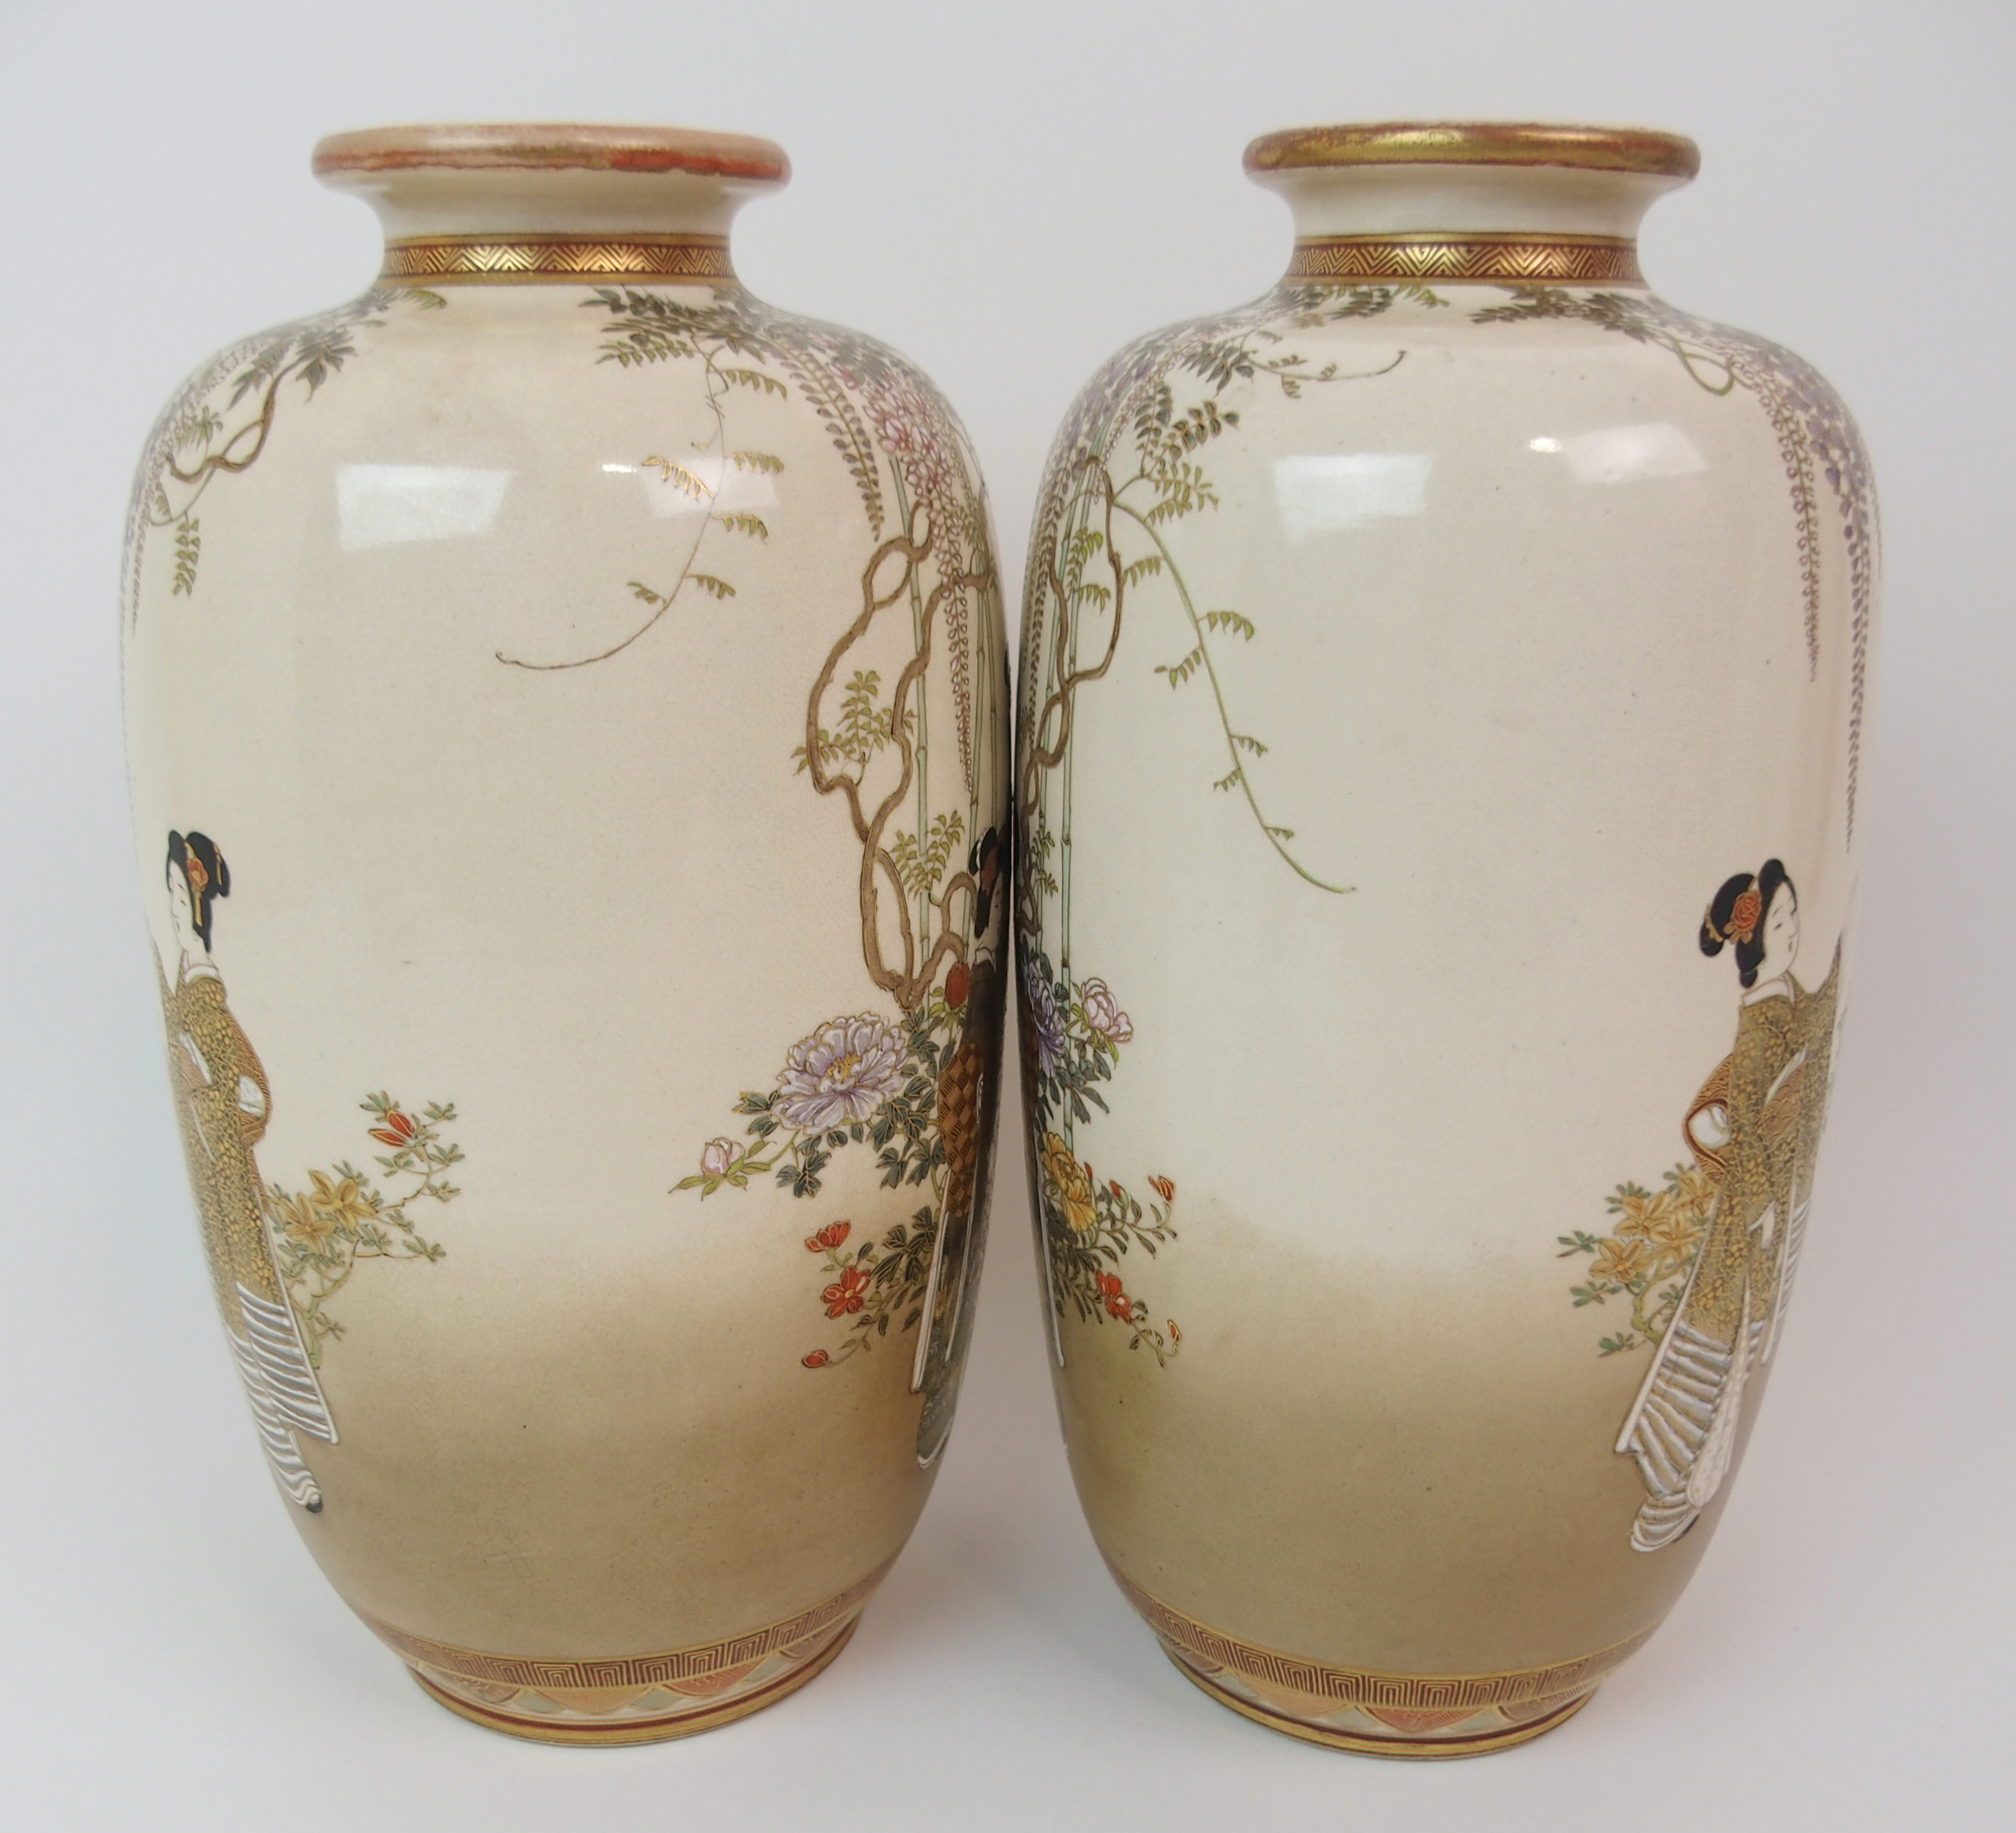 Lot 35 - A PAIR OF SATSUMA VASES painted with ladies and children beneath wisteria and amongst flowers,